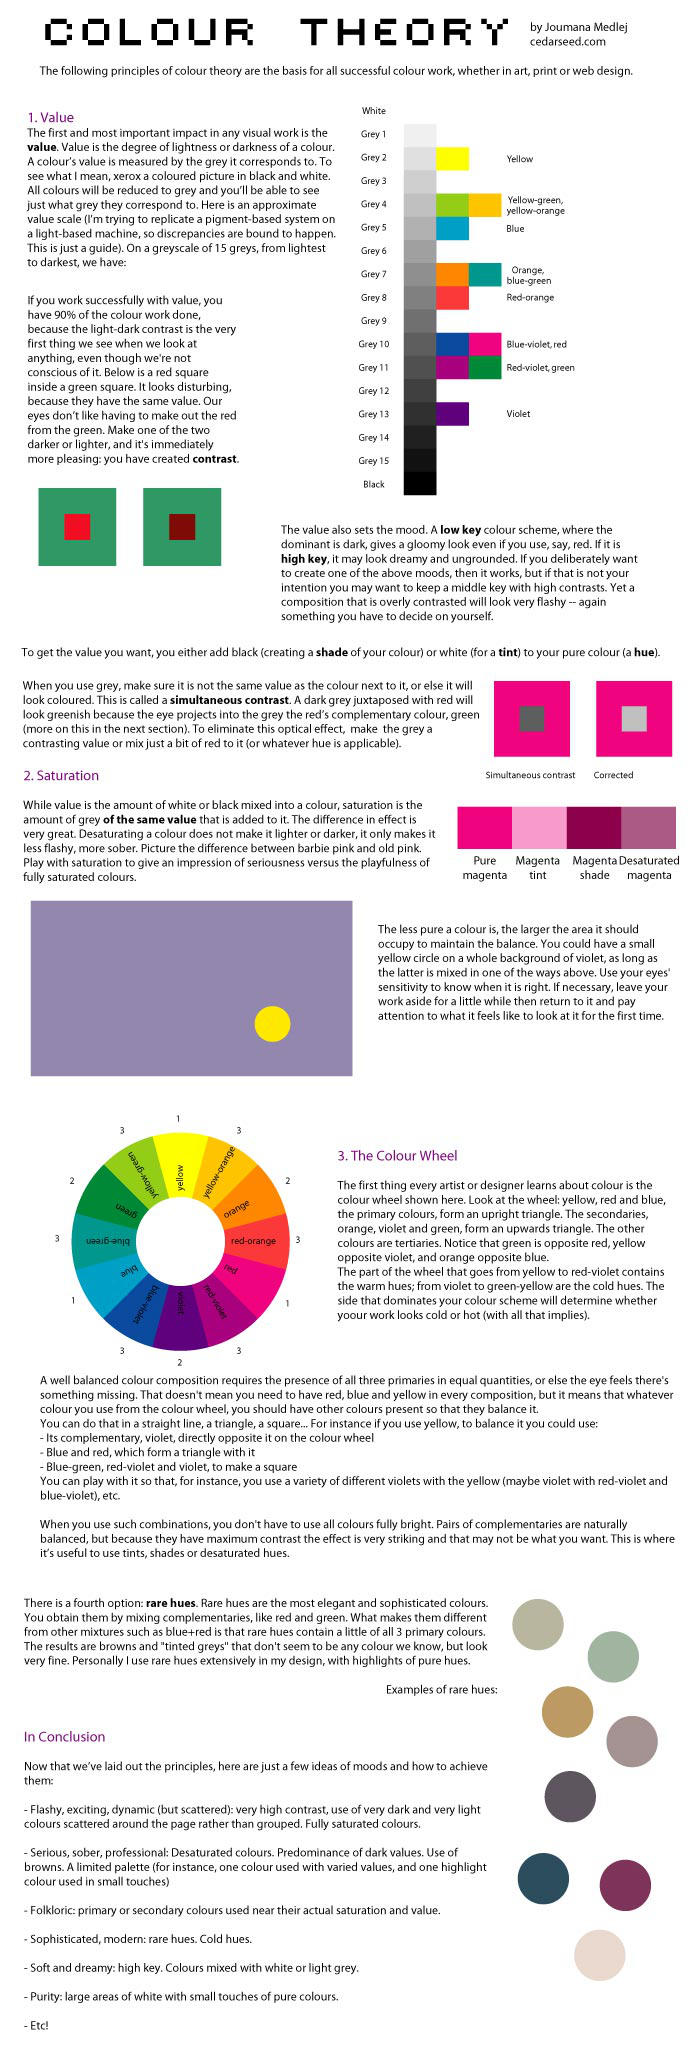 Colour Theory In A Nutshell By Majnouna On Deviantart